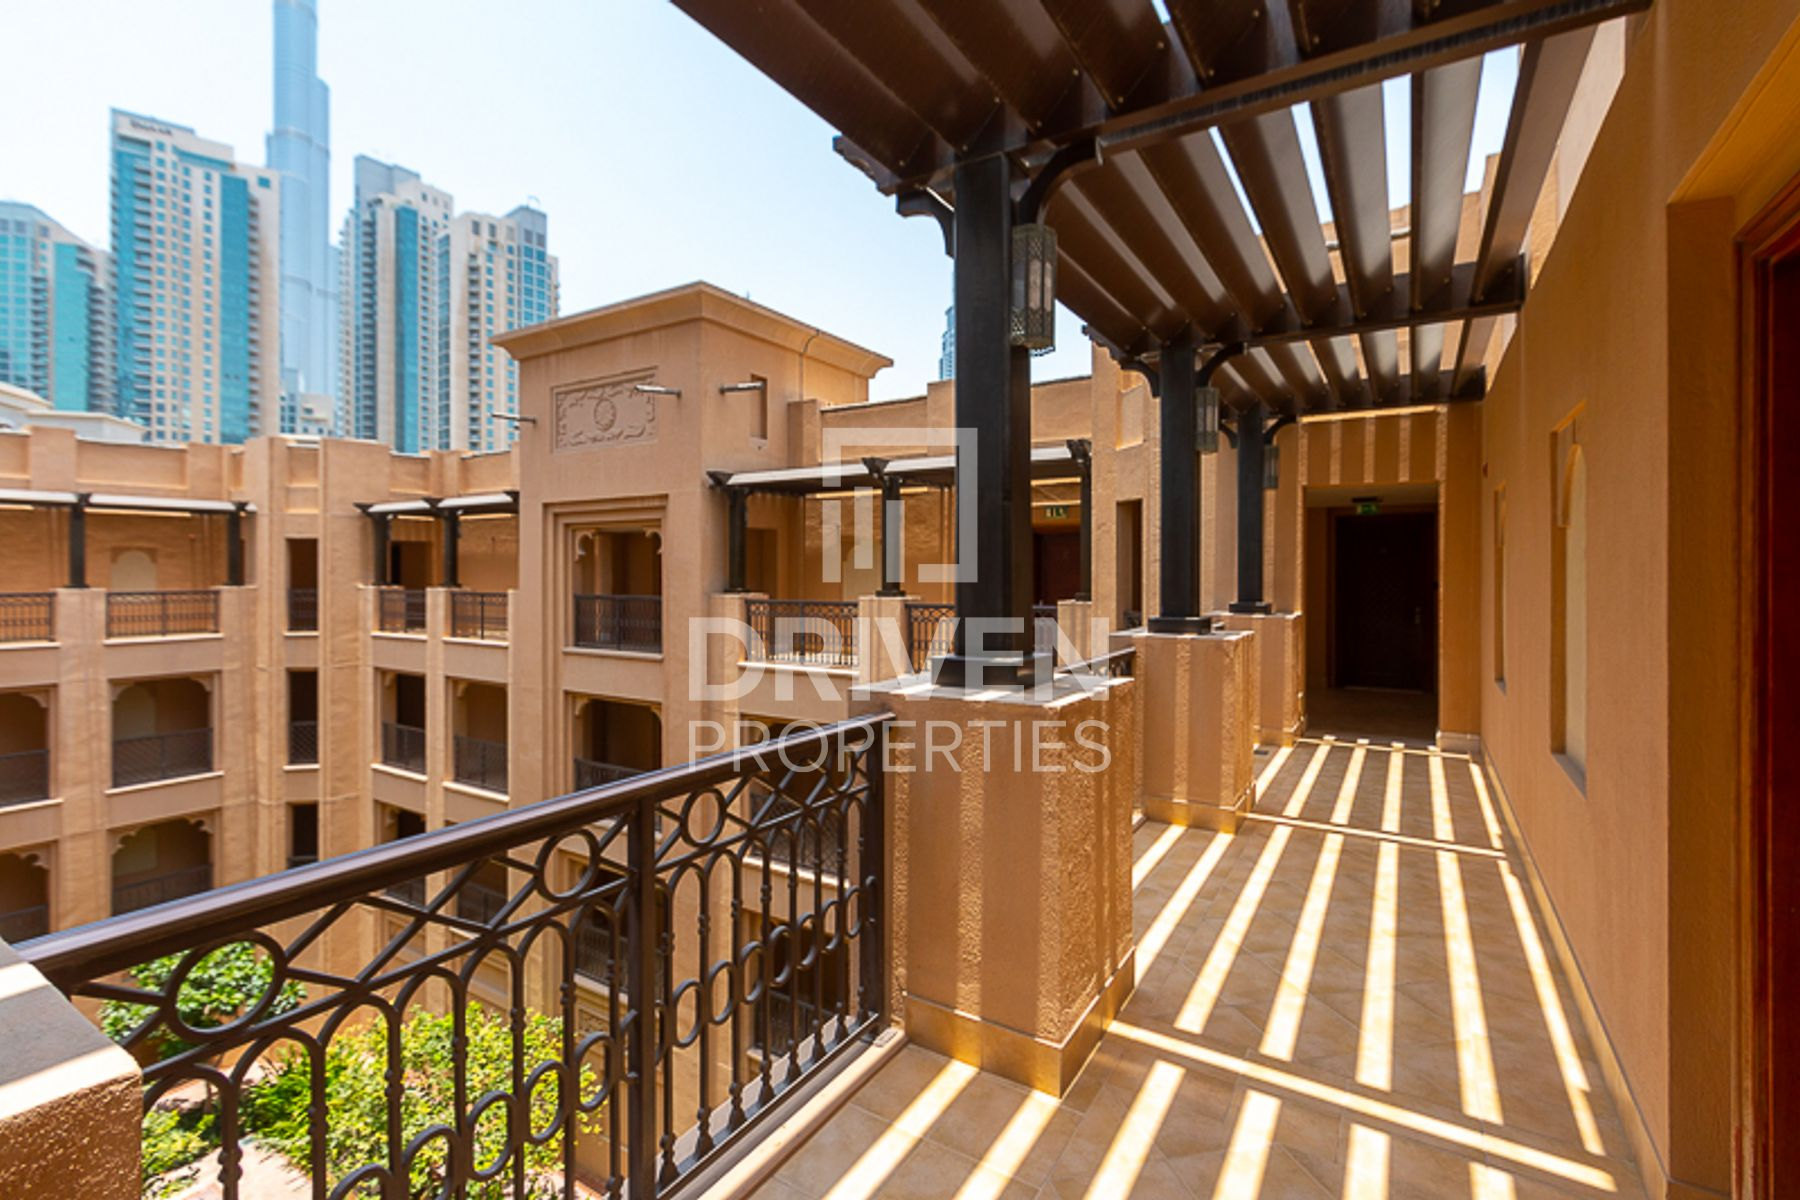 Apartment for Sale in Zanzebeel 1 - Old Town